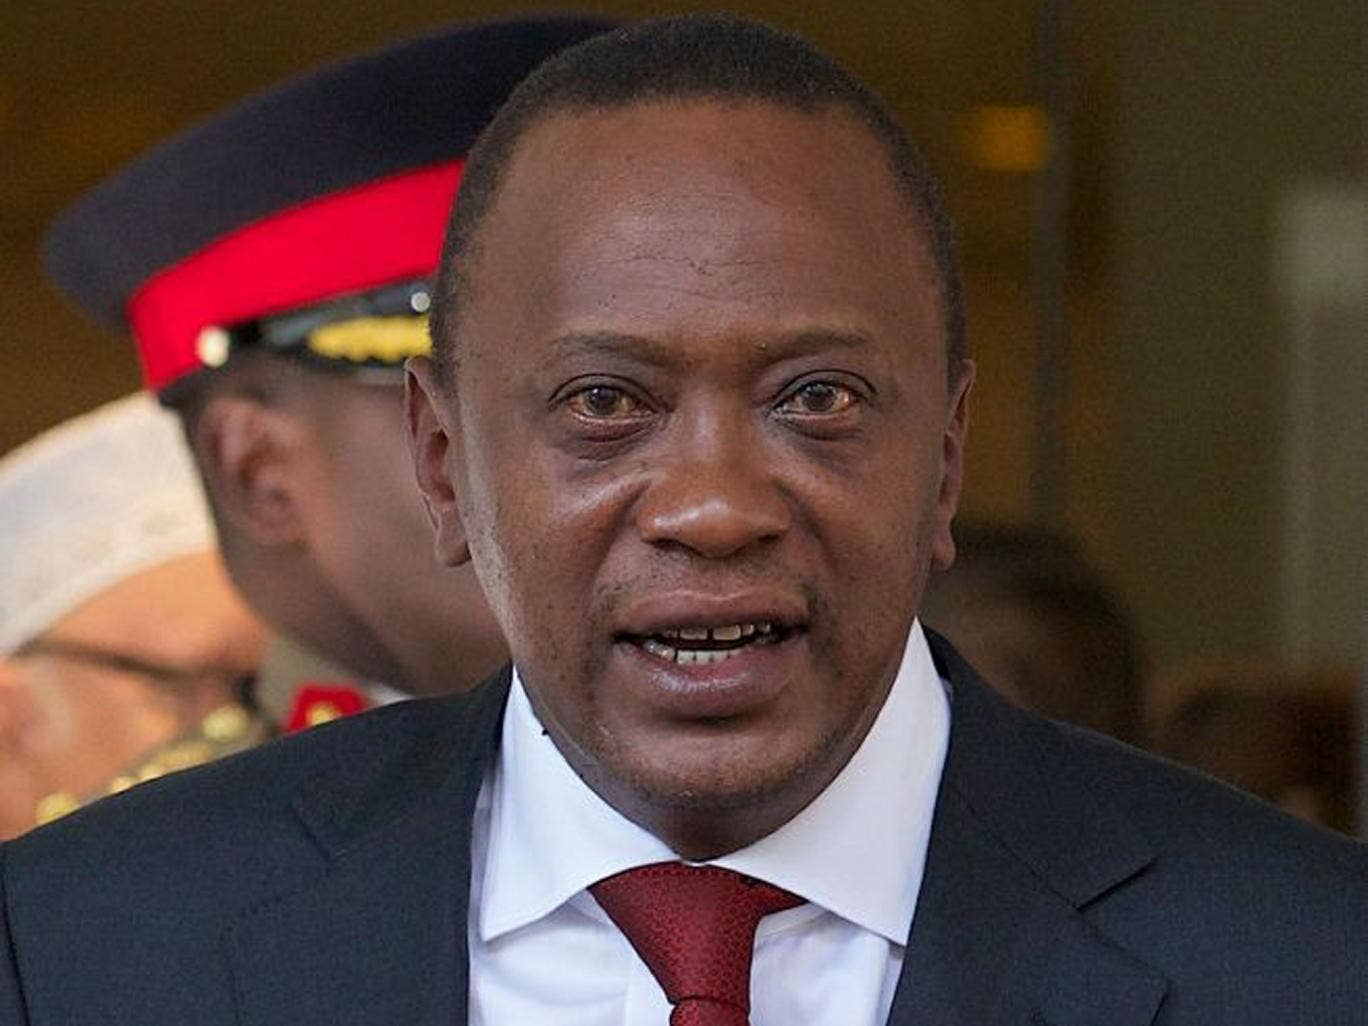 Lawyers for Kenyatta have previously petitioned the court for a dismissal, arguing that evidence against Kenyatta was tainted by false testimony